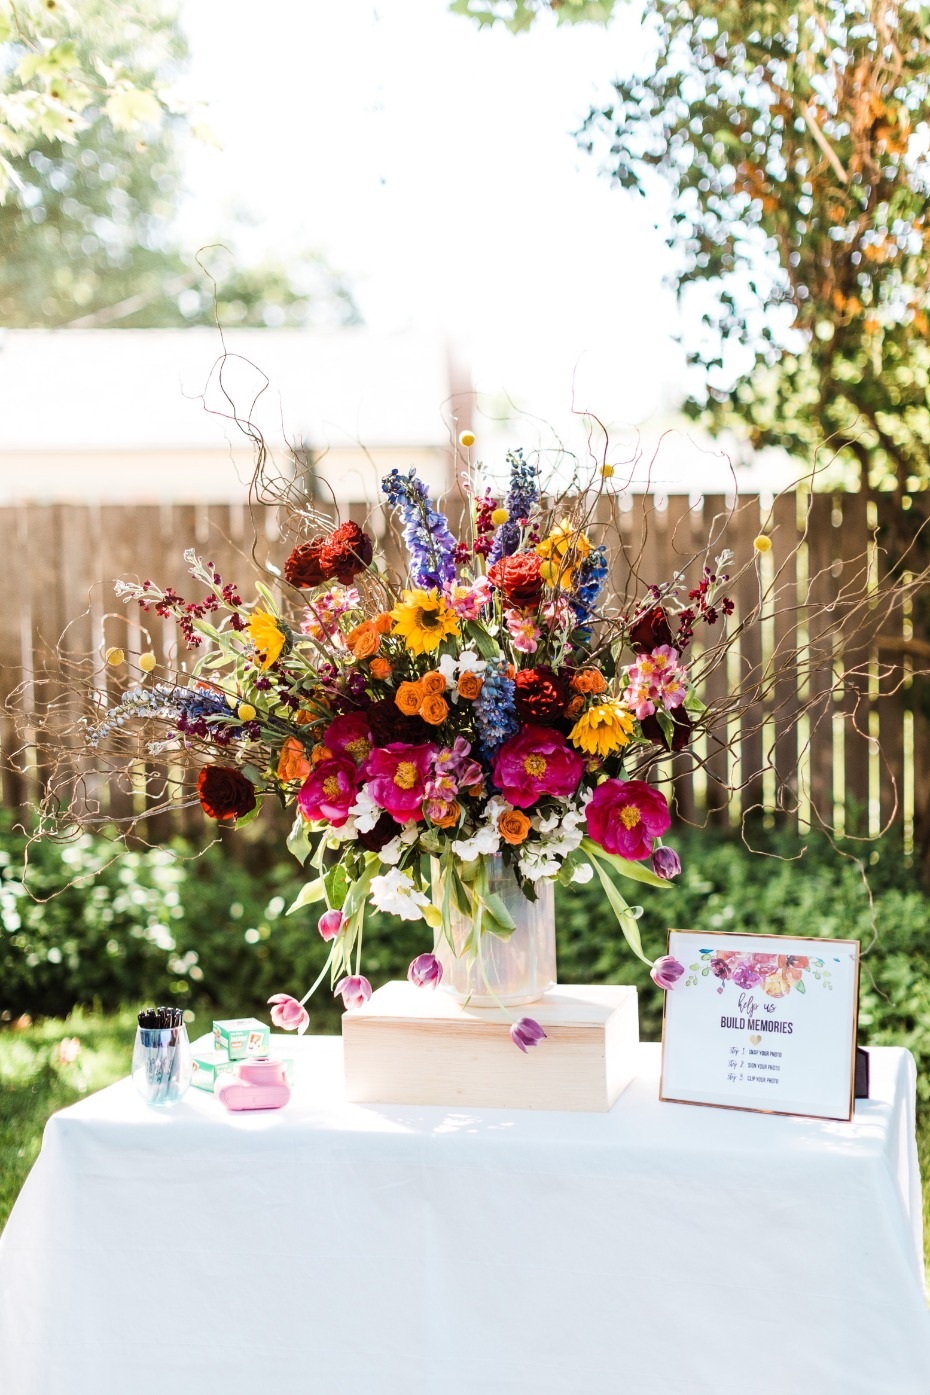 unique wedding guest book from FiftyFlowers.com